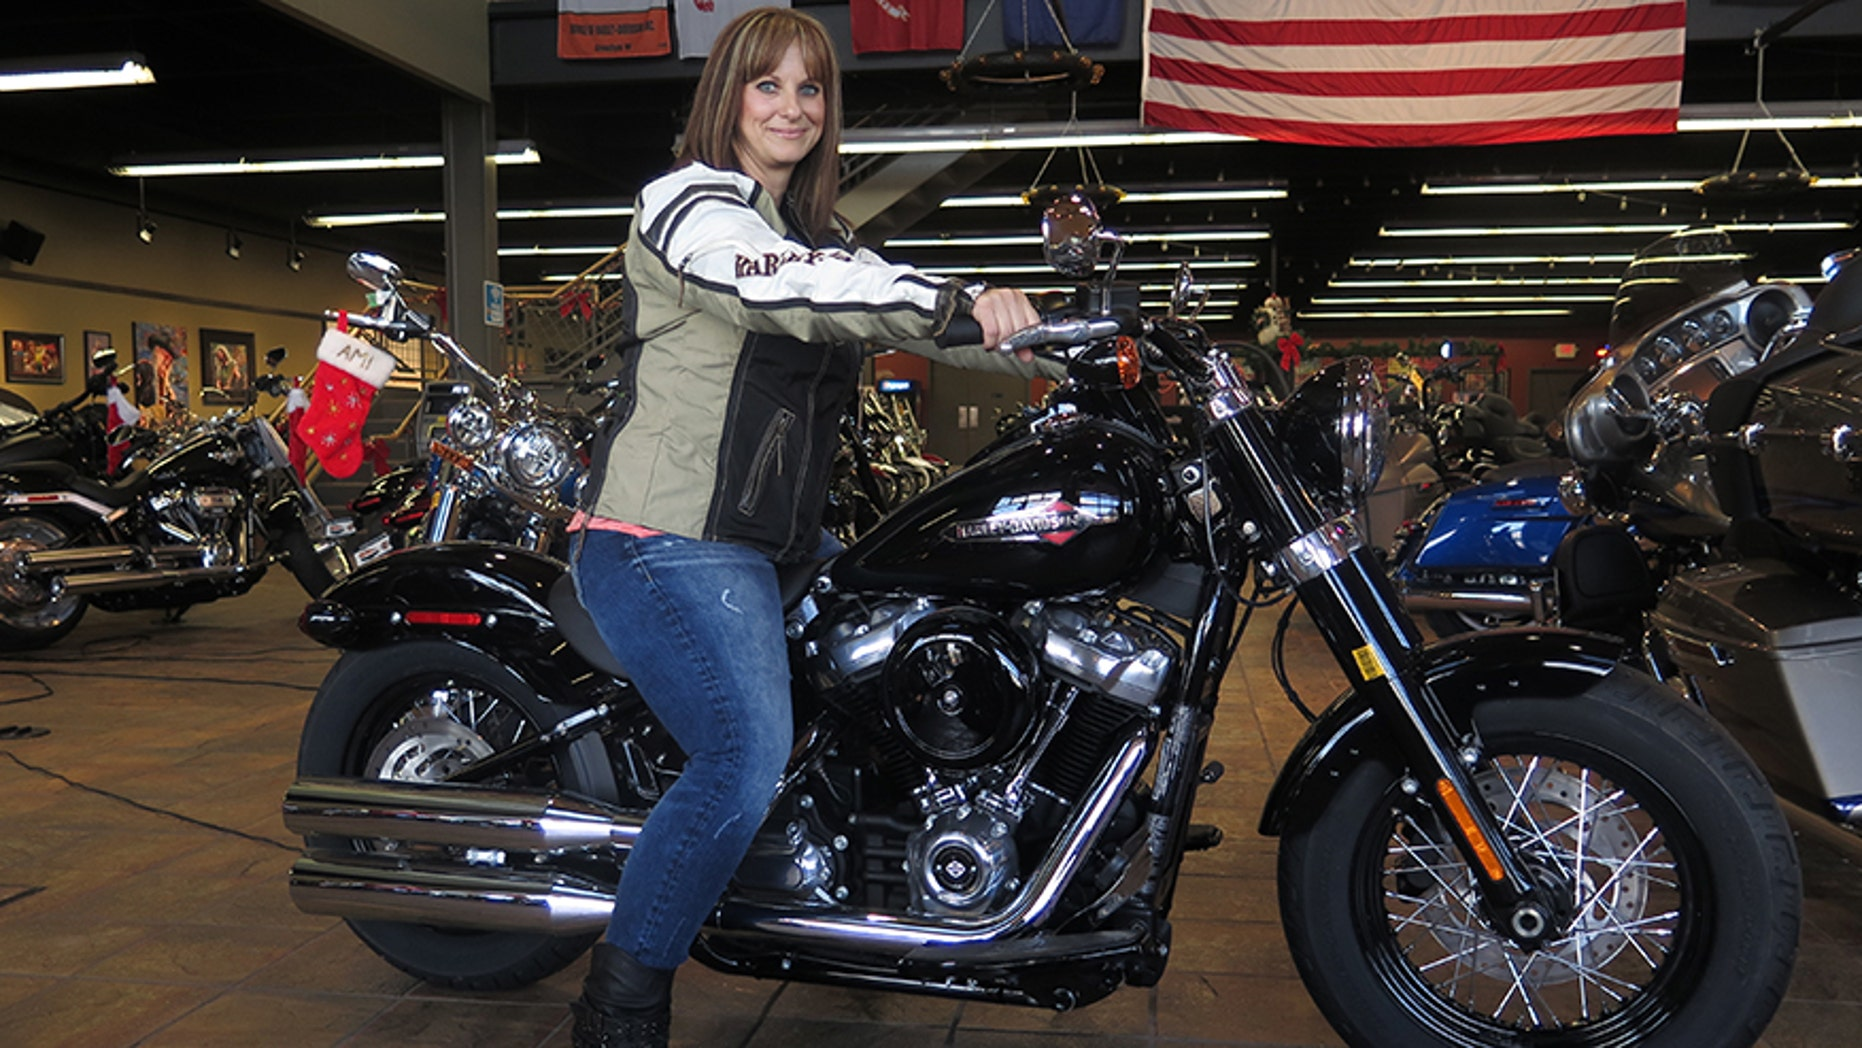 """In this Dec. 12, 2017, photo, Terri Meehan poses on a 2018 Harley Softail Slim in Milwaukee's House of Harley. Meehan took a riding course at the dealership as part of Harley-Davidson's """"Riding Academy,"""" an initiative the company hopes will help bring new customers. (AP Photo/Ivan Moreno)"""